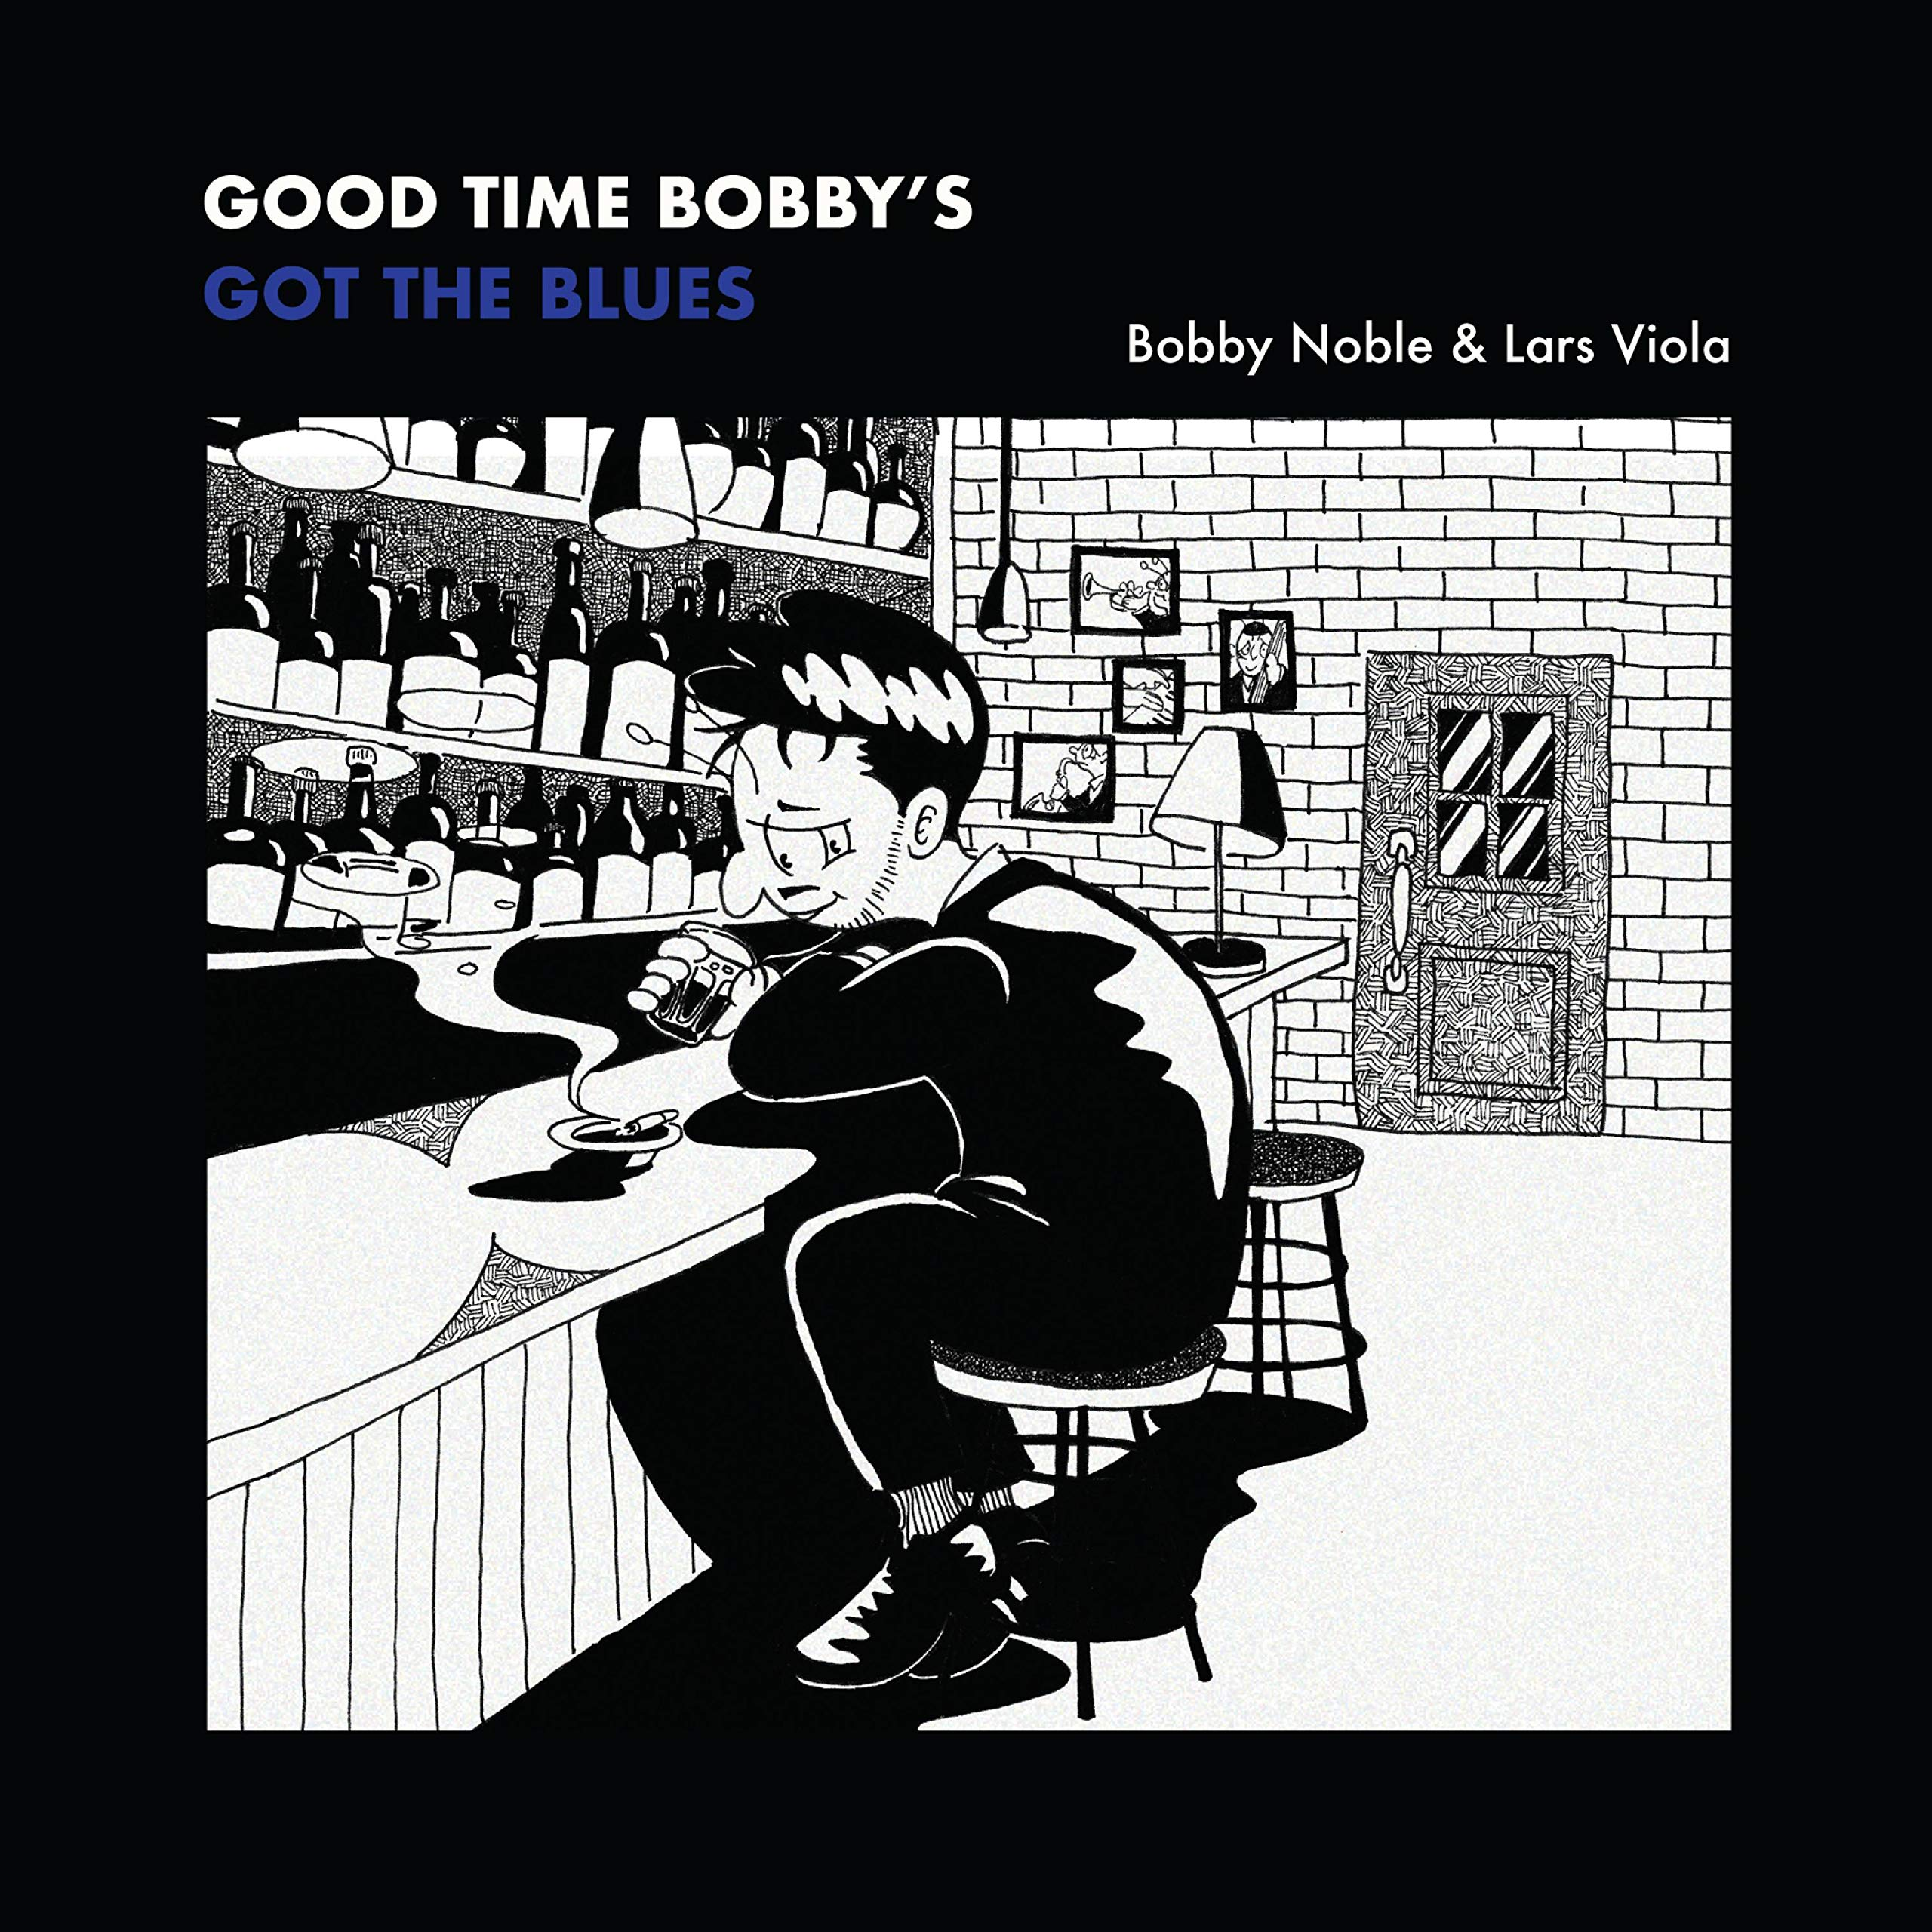 Bobby Noble & Lars Viola - Good Time Bobby's Got The Blues (2020) [FLAC] Download